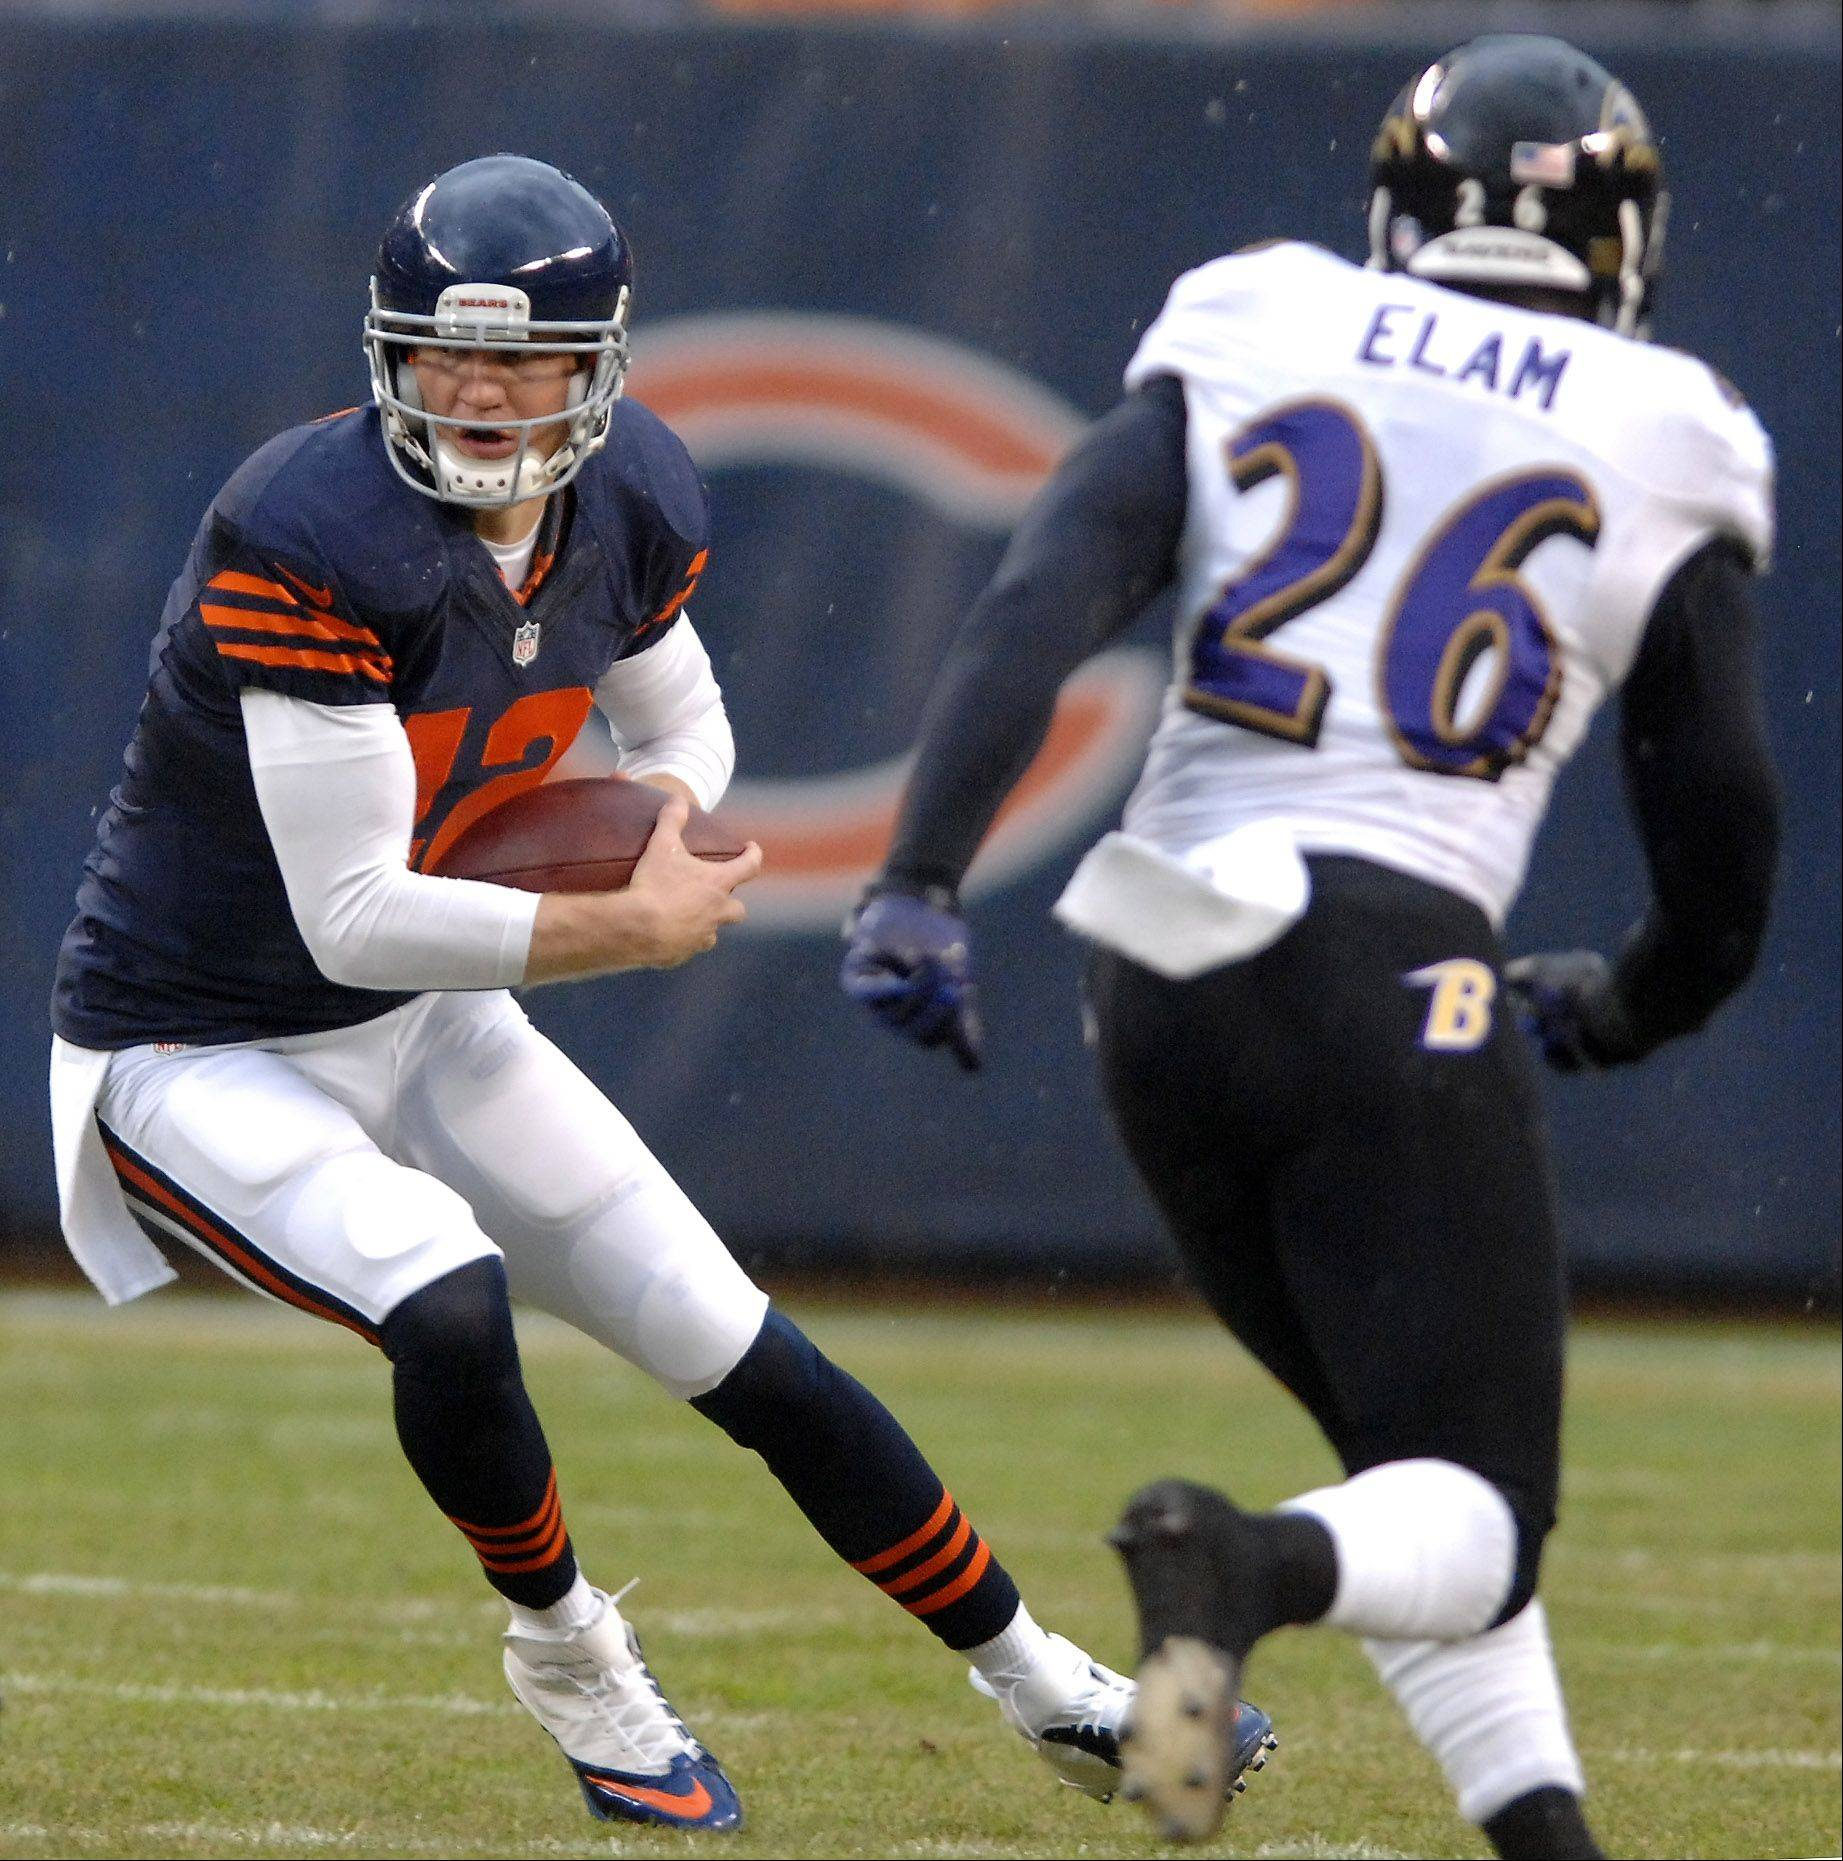 Chicago Bears quarterback Josh McCown (12) tucks and runs as he eludes Baltimore Ravens free safety Matt Elam (26) during Sunday's game in Chicago.